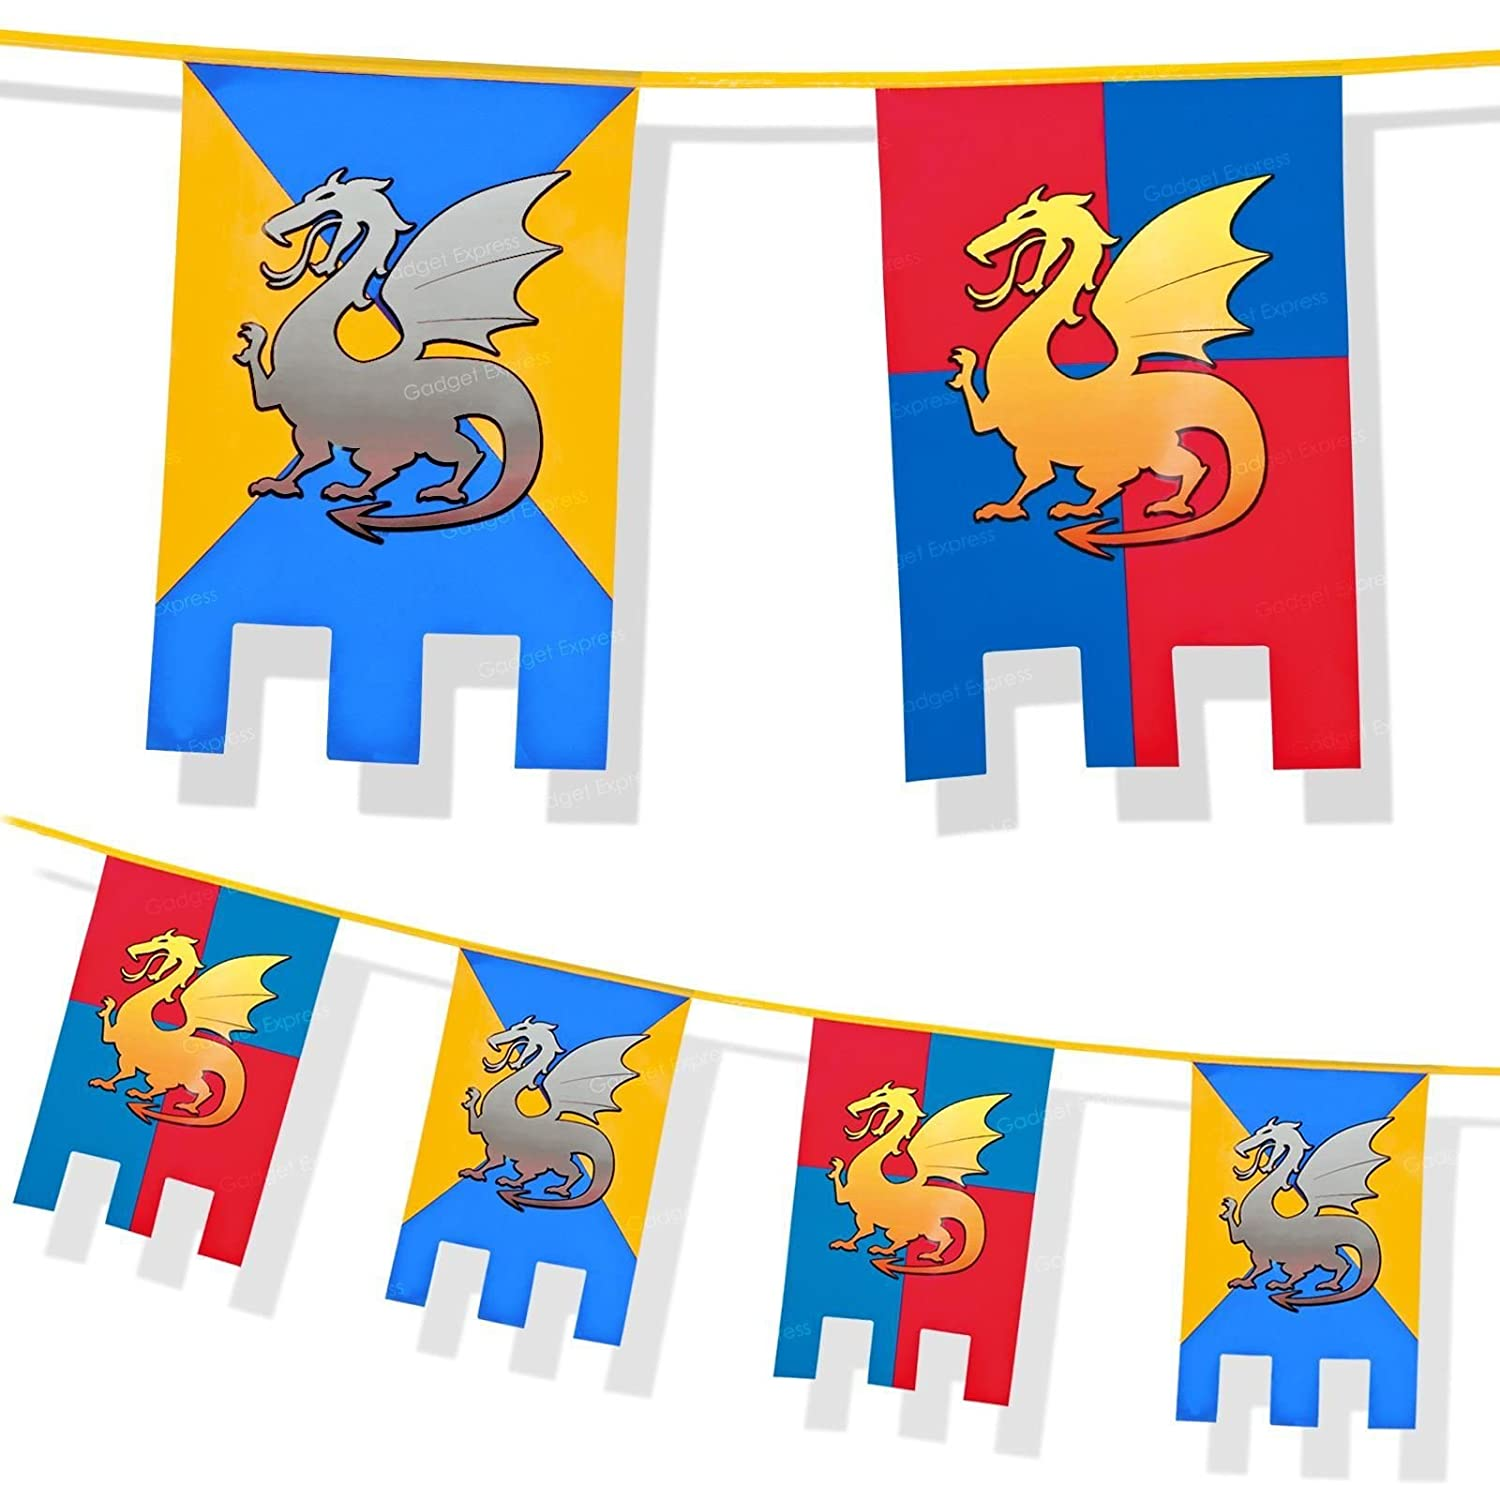 6m Knights And Dragons Bunting Medieval Thrones Party Decoration Flags  Party Caste Hanging Jousting Flag